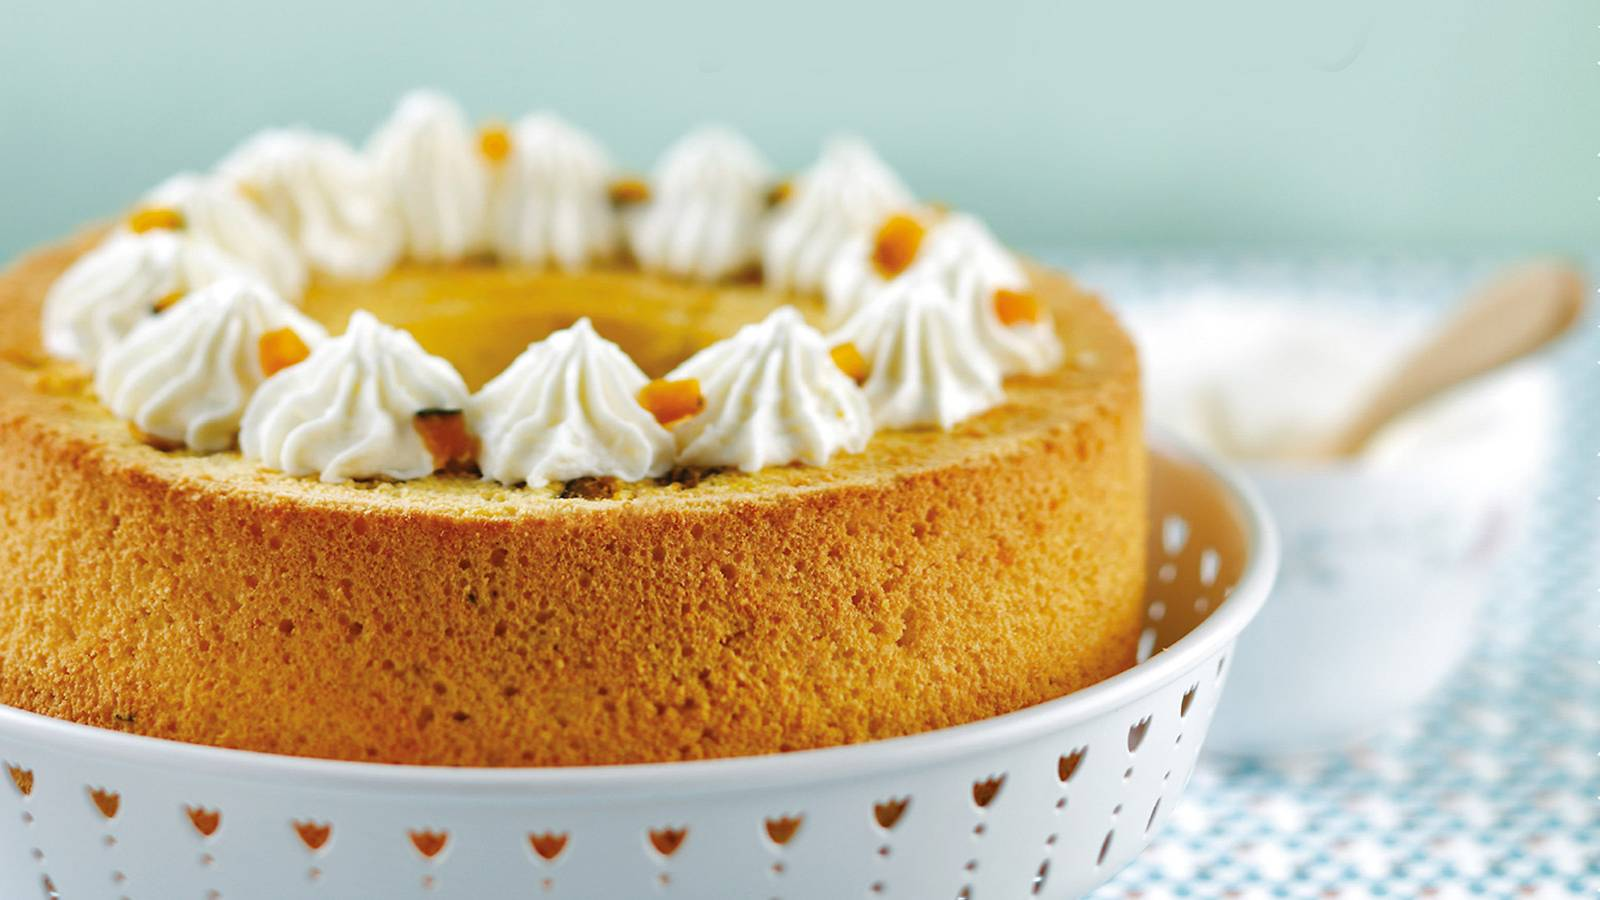 Parents---Make-It-Orange-cake-recipes-MAIN